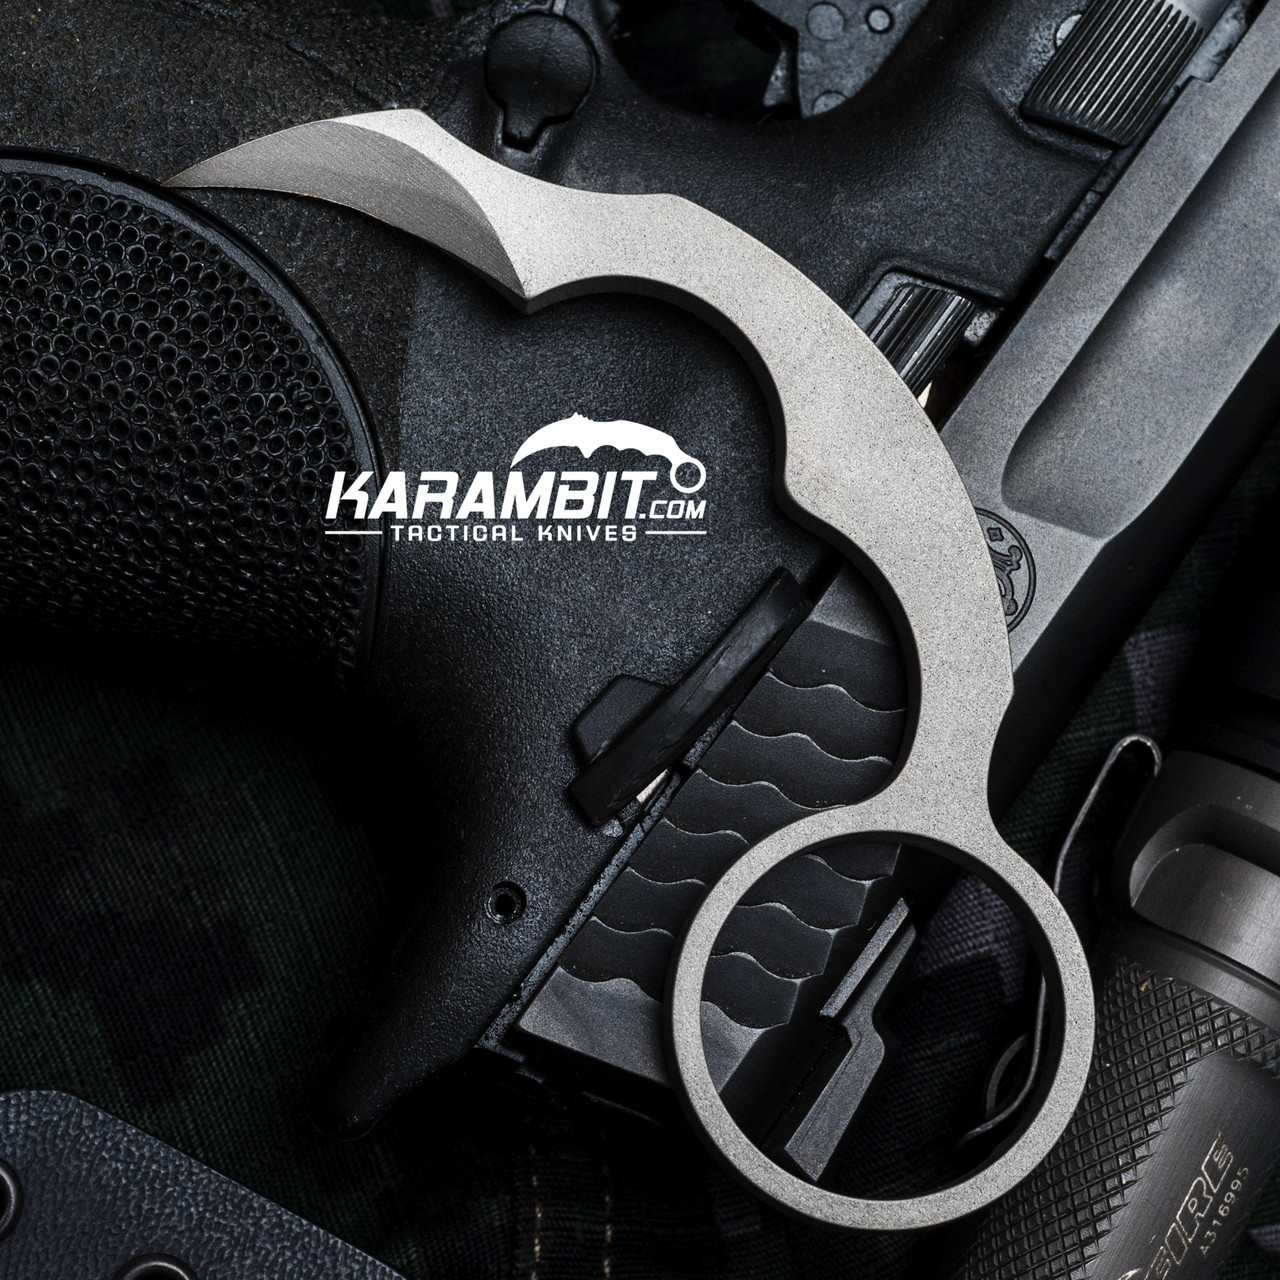 The Max Venom Karambite Last Ditch Neck Knife Karambit Com